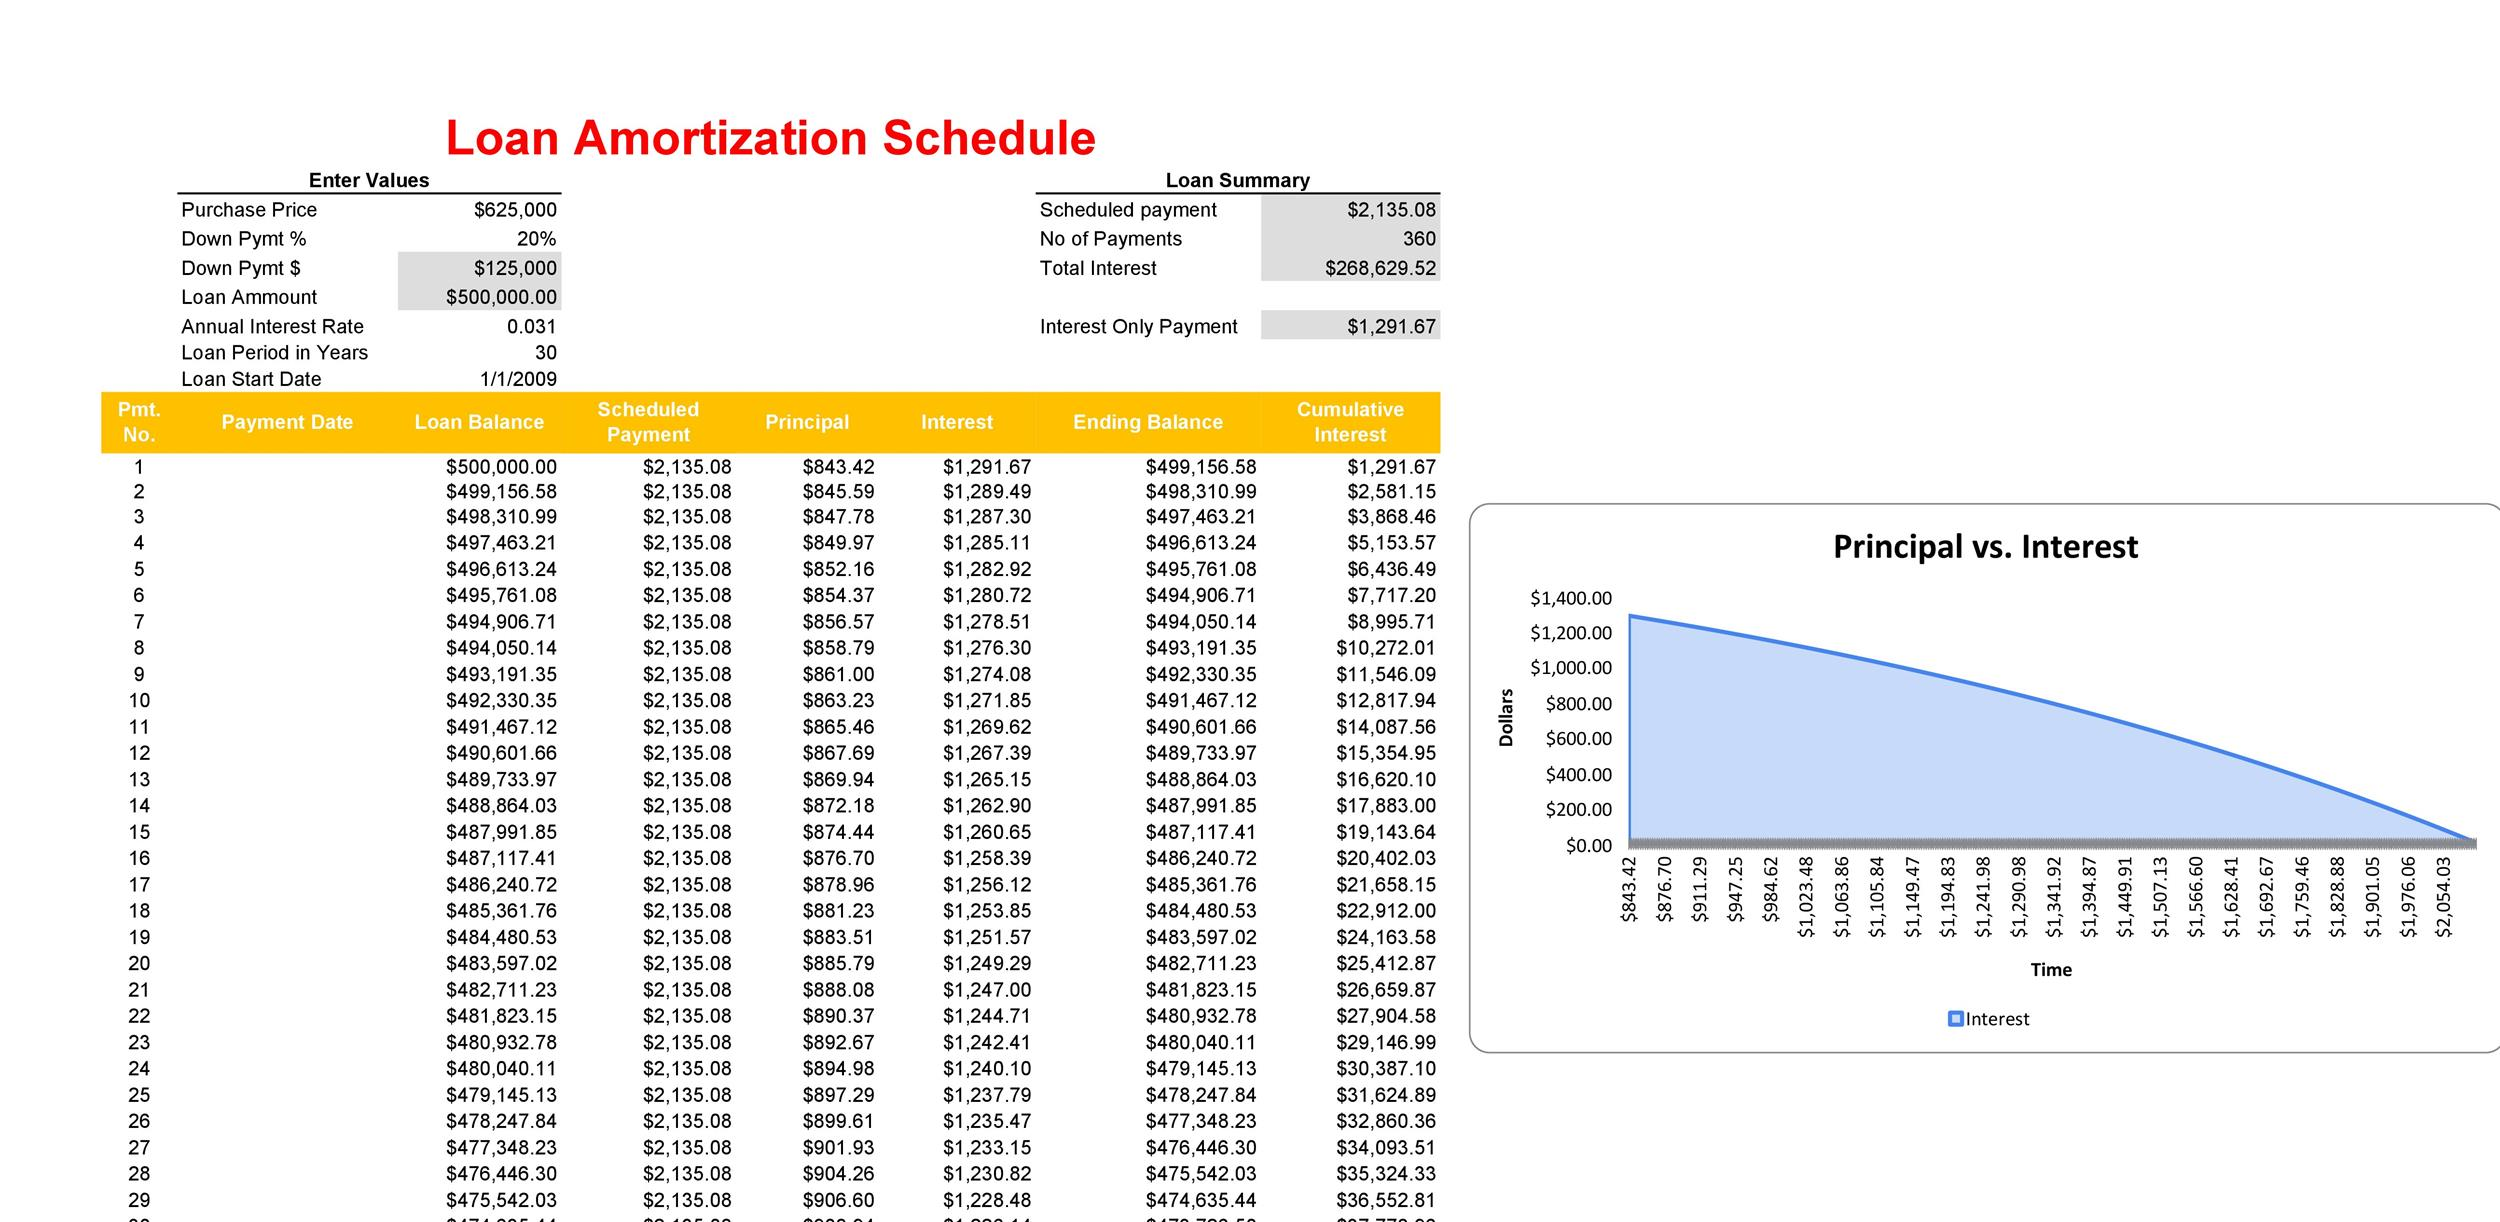 28 Tables to Calculate Loan Amortization Schedule (Excel) - Template Lab - Sample Schedules - Amortization Schedule Excel